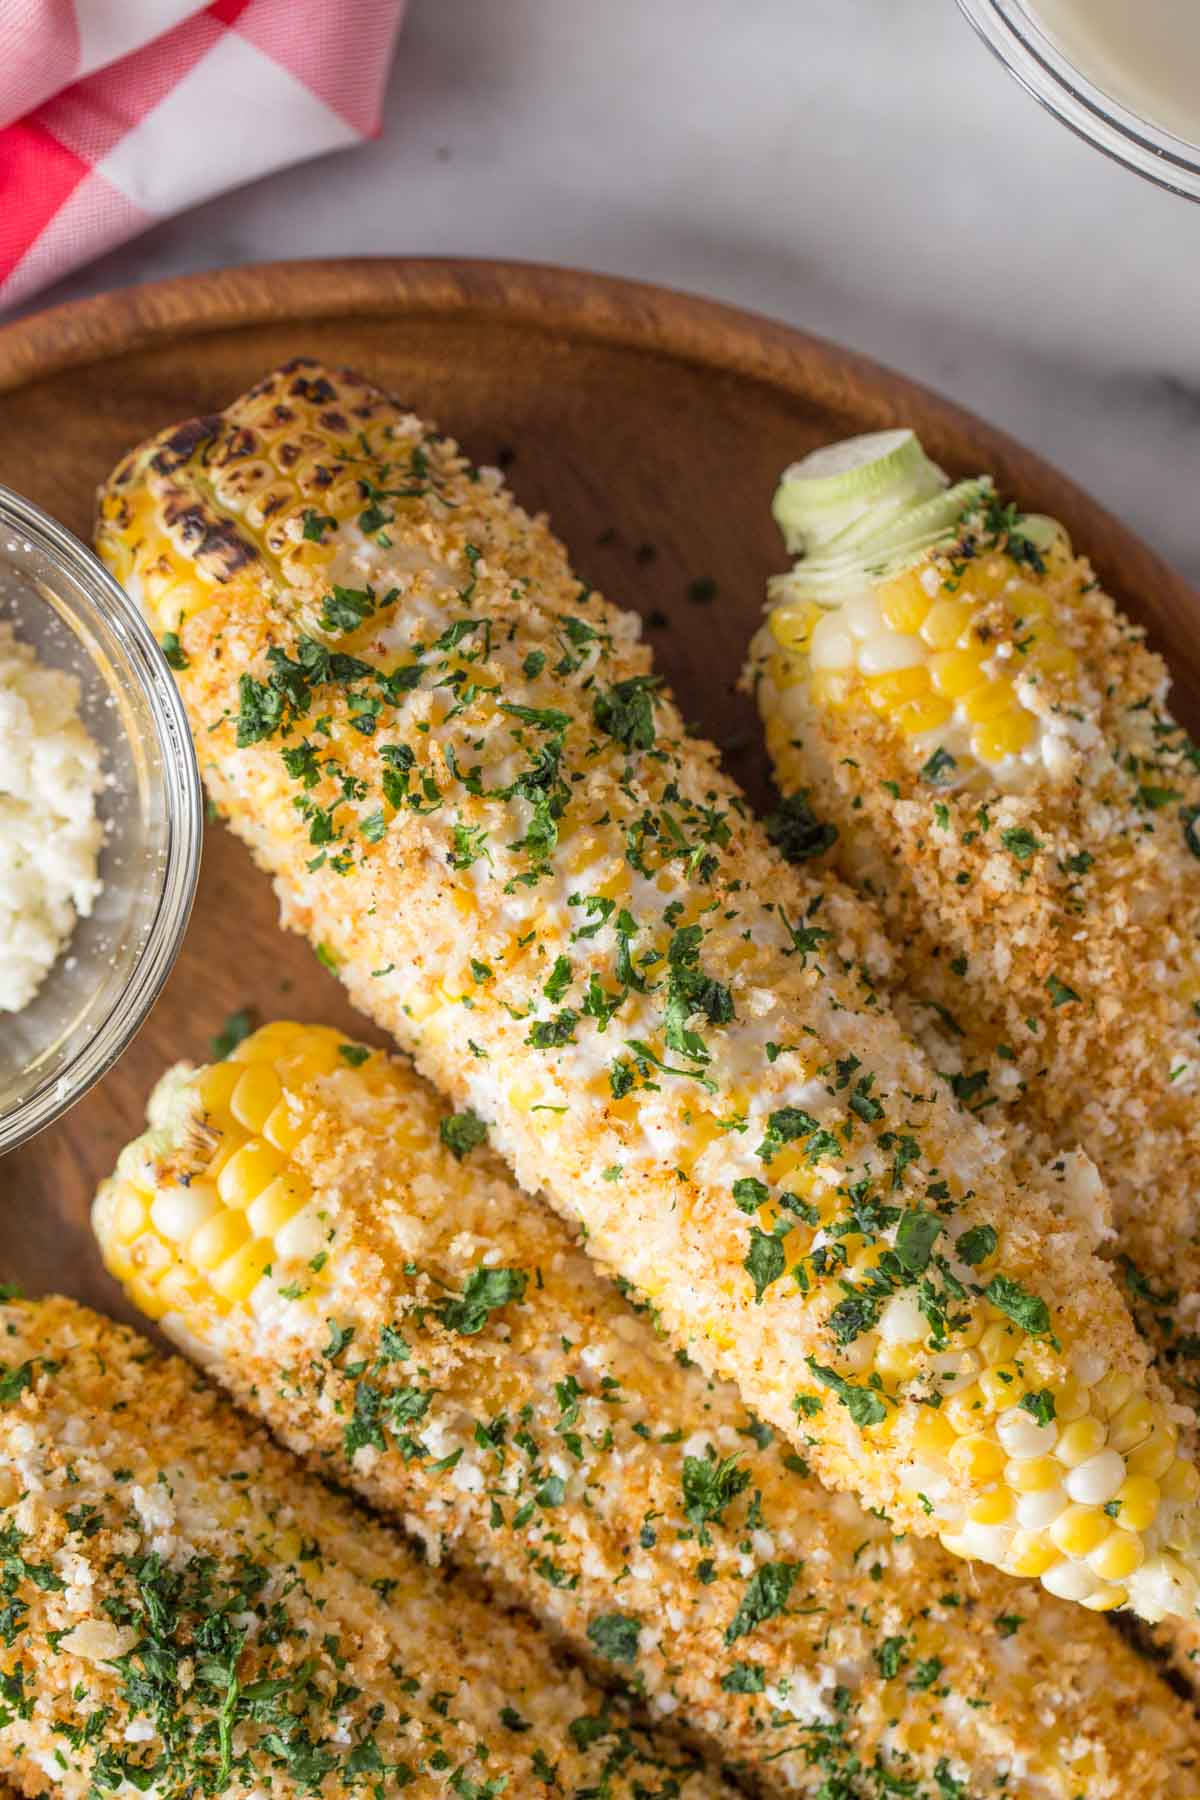 Overhead shot of Mexican Street Corn With Panko on a wood platter.